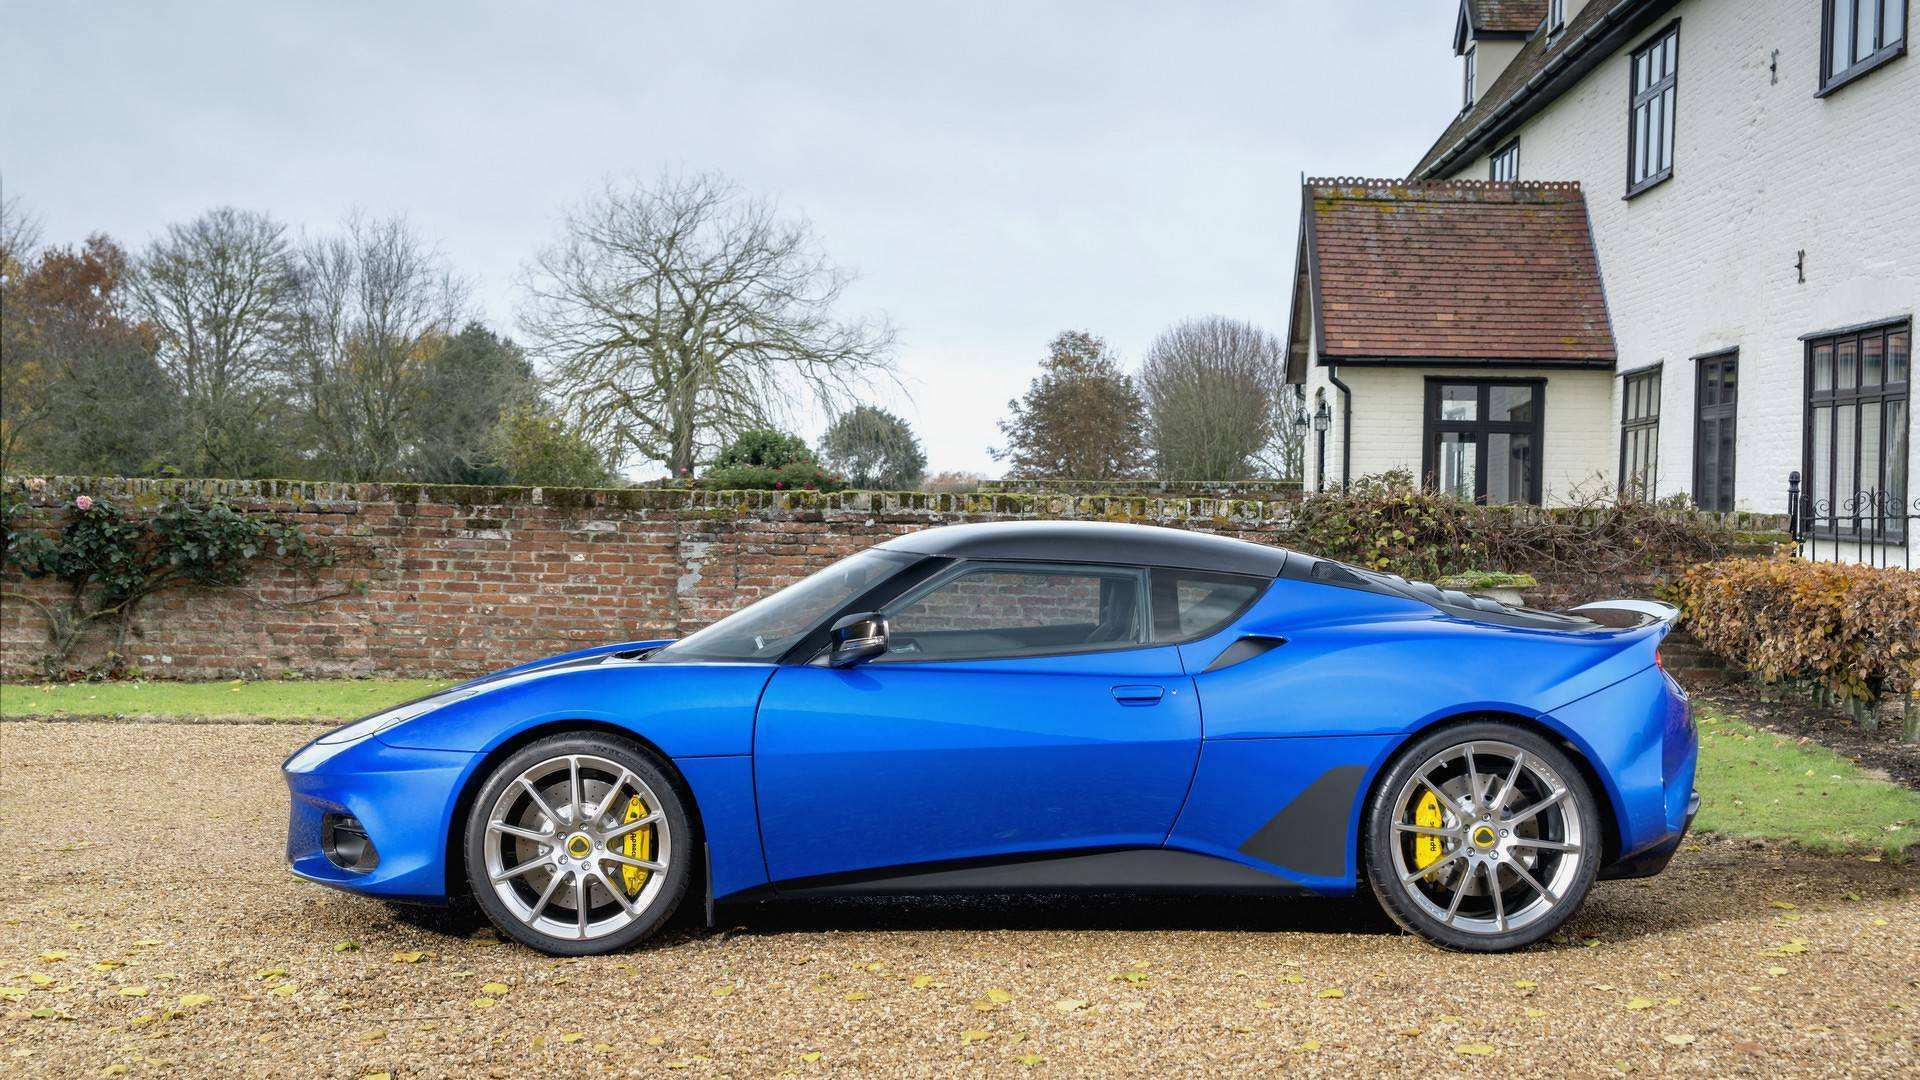 91 Best 2020 The Lotus Evora Review